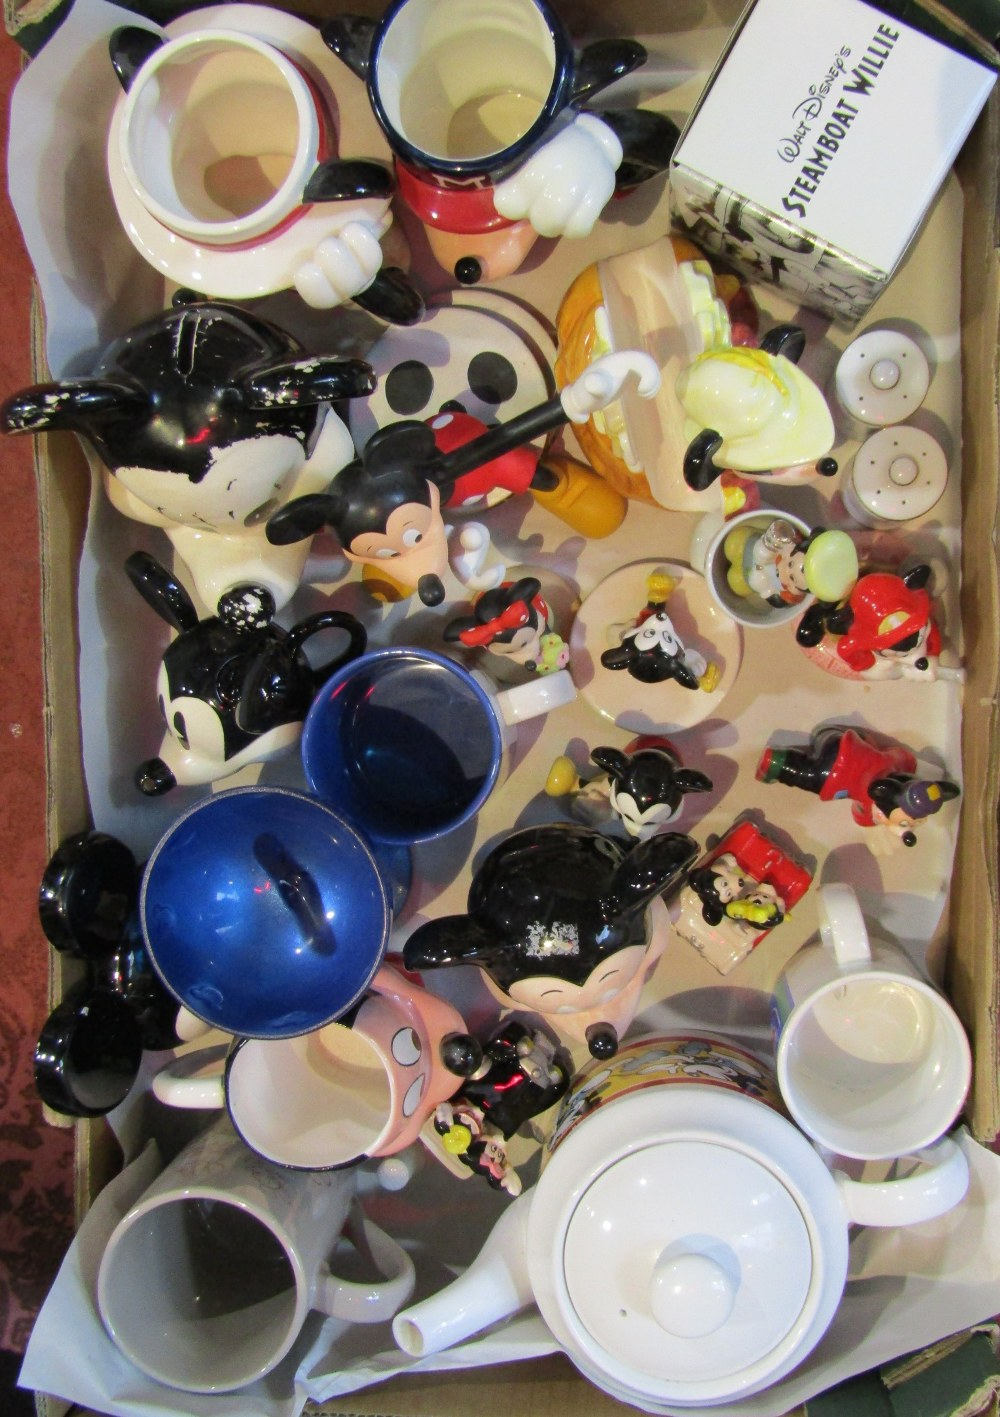 Lot 304 - A collection of Disney related ceramics including a novelty teapot in the form of Mickey's head by